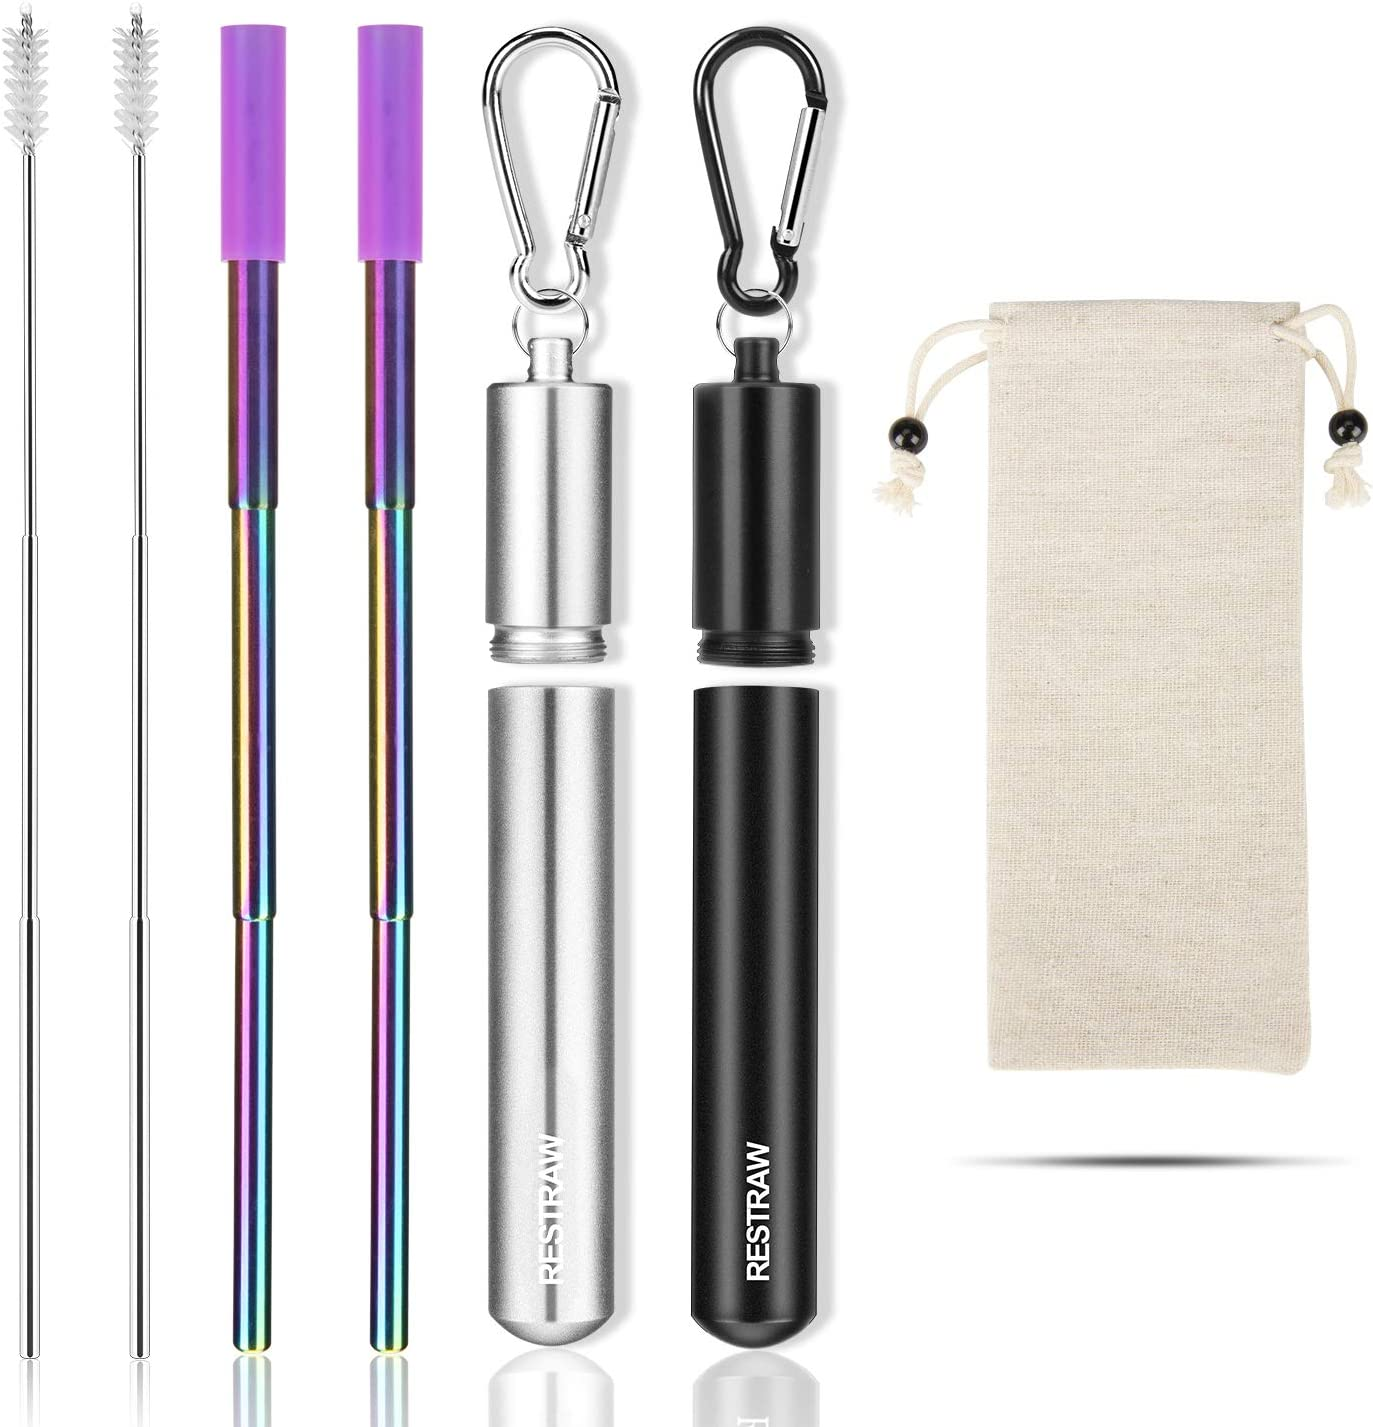 Metal Straws Reusable Collapsible Stainless Steel Straws Portable Telescopic Drinking Straw for Tumbler Cold Beverage with Aluminum Key-chain Cases, Cleaning Brushes (rainbow, set of 2)